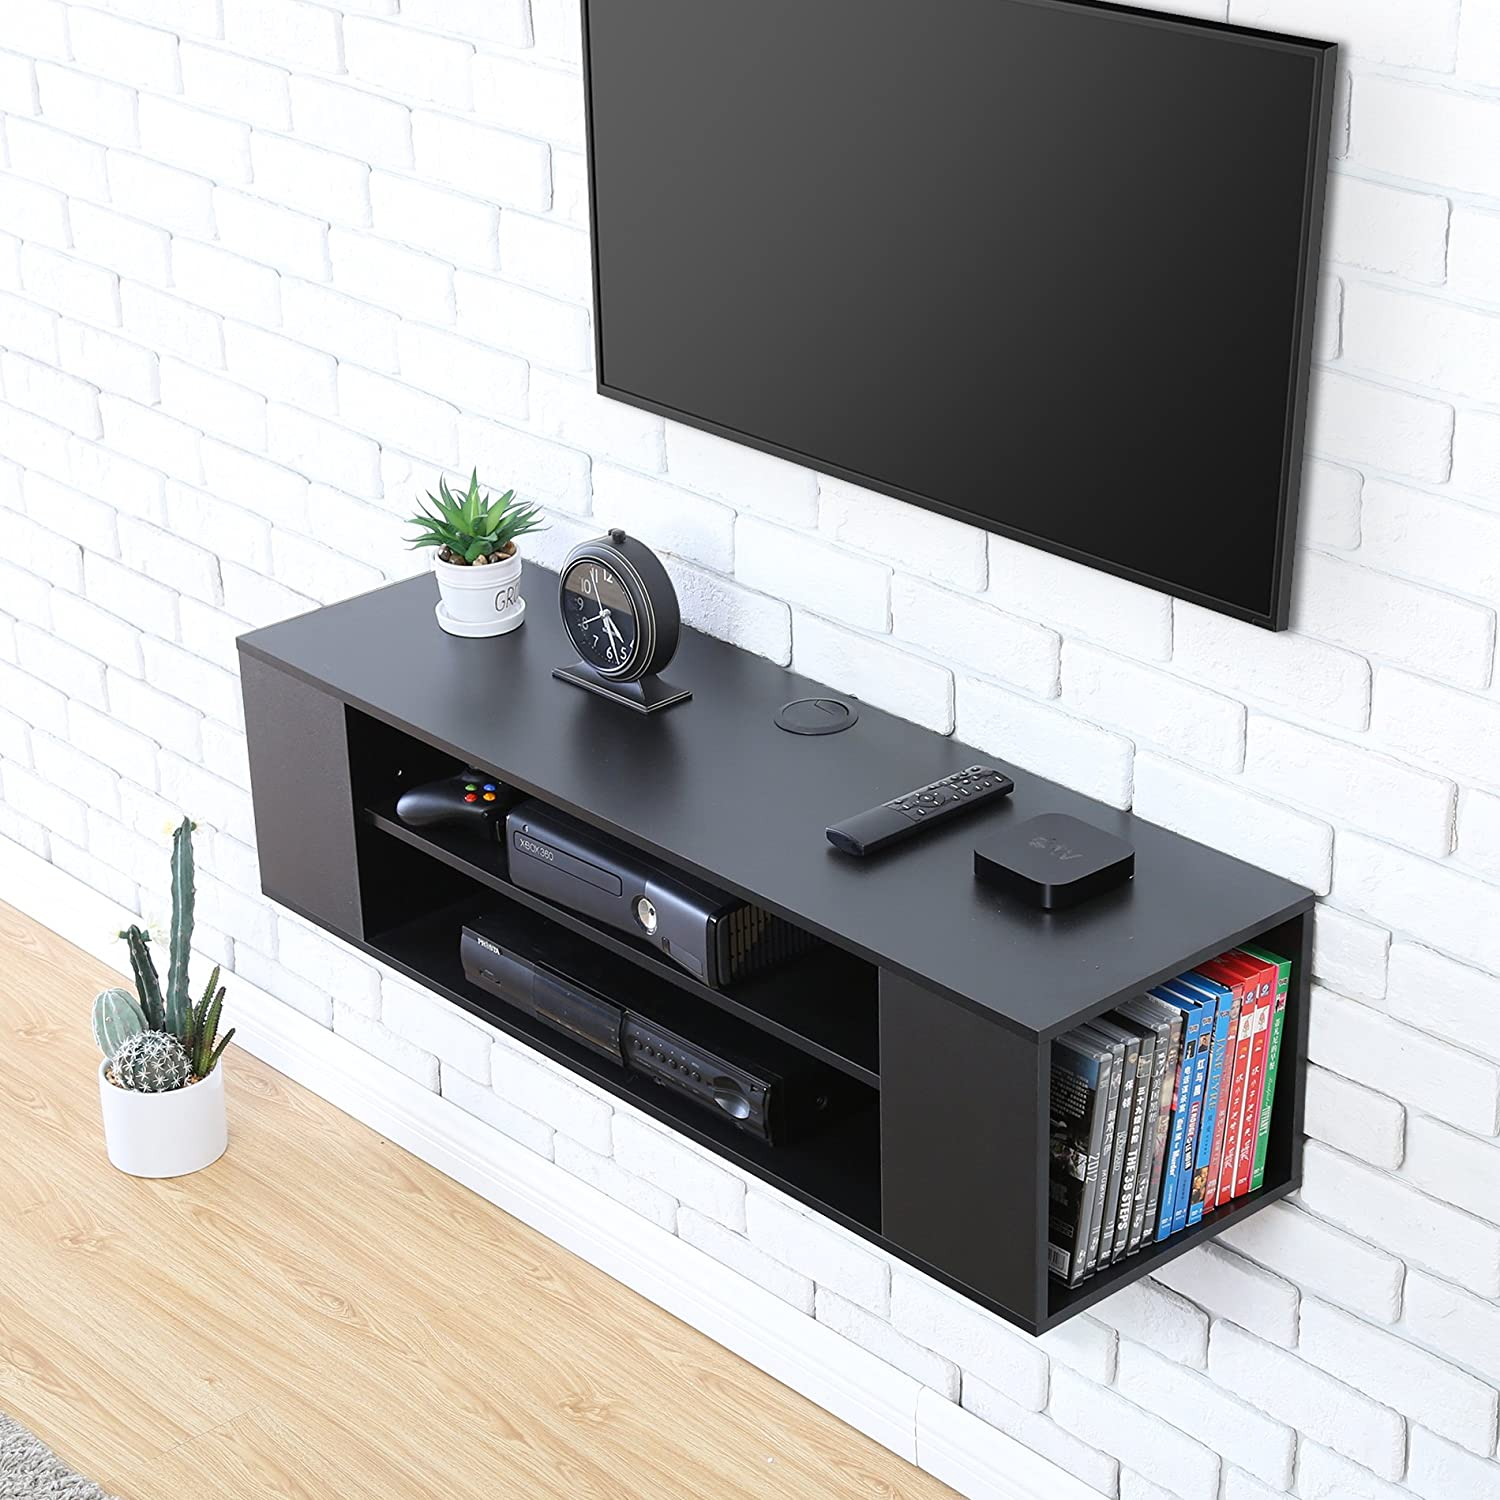 FITUEYES Floating TV Stand Cabinet Wall Mount Wood Entertainment Unit Black DS210002WB